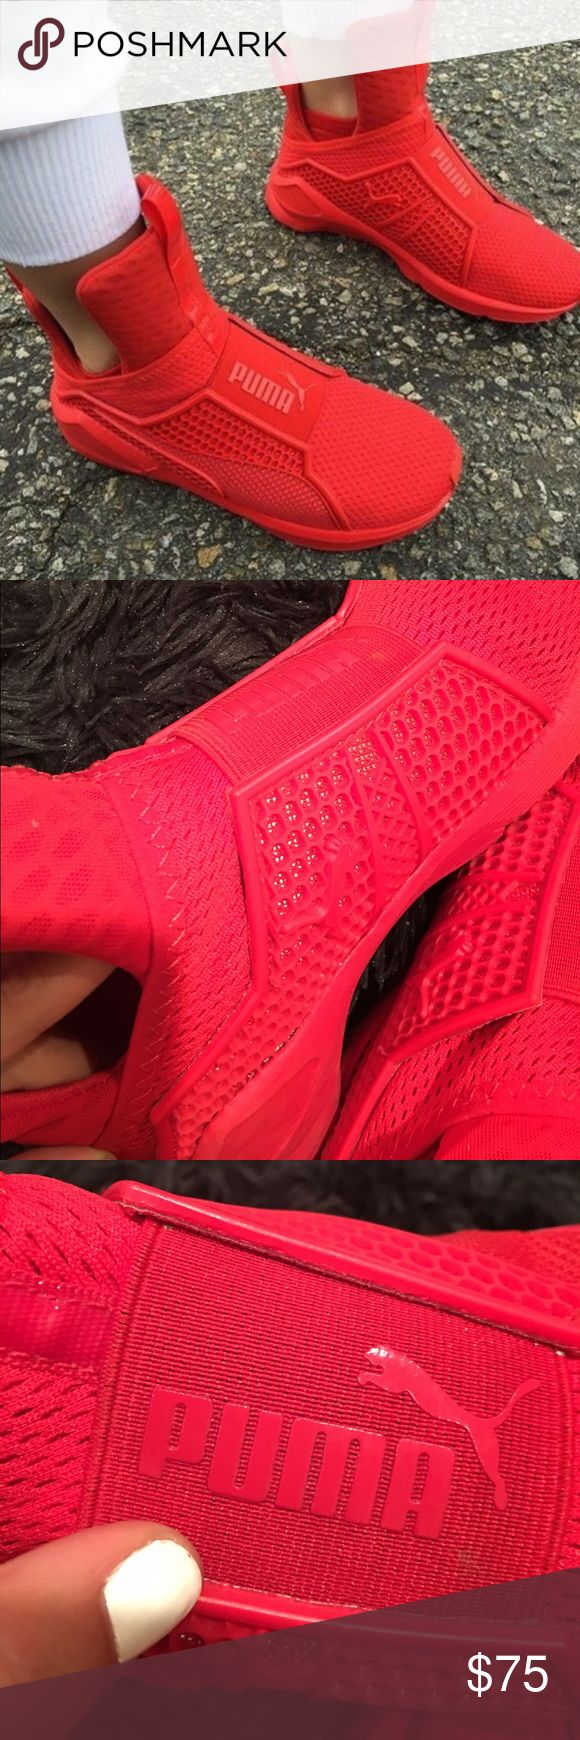 RHIANNA PUMA FENTY TRAINER RED PERFECT CONDITION. I wore these like twice. Amazing shoe super comfortable just a little small for me. I AM OPEN TO TRADES. OR YOU CAN PURCHASE :) Shoes Sneakers